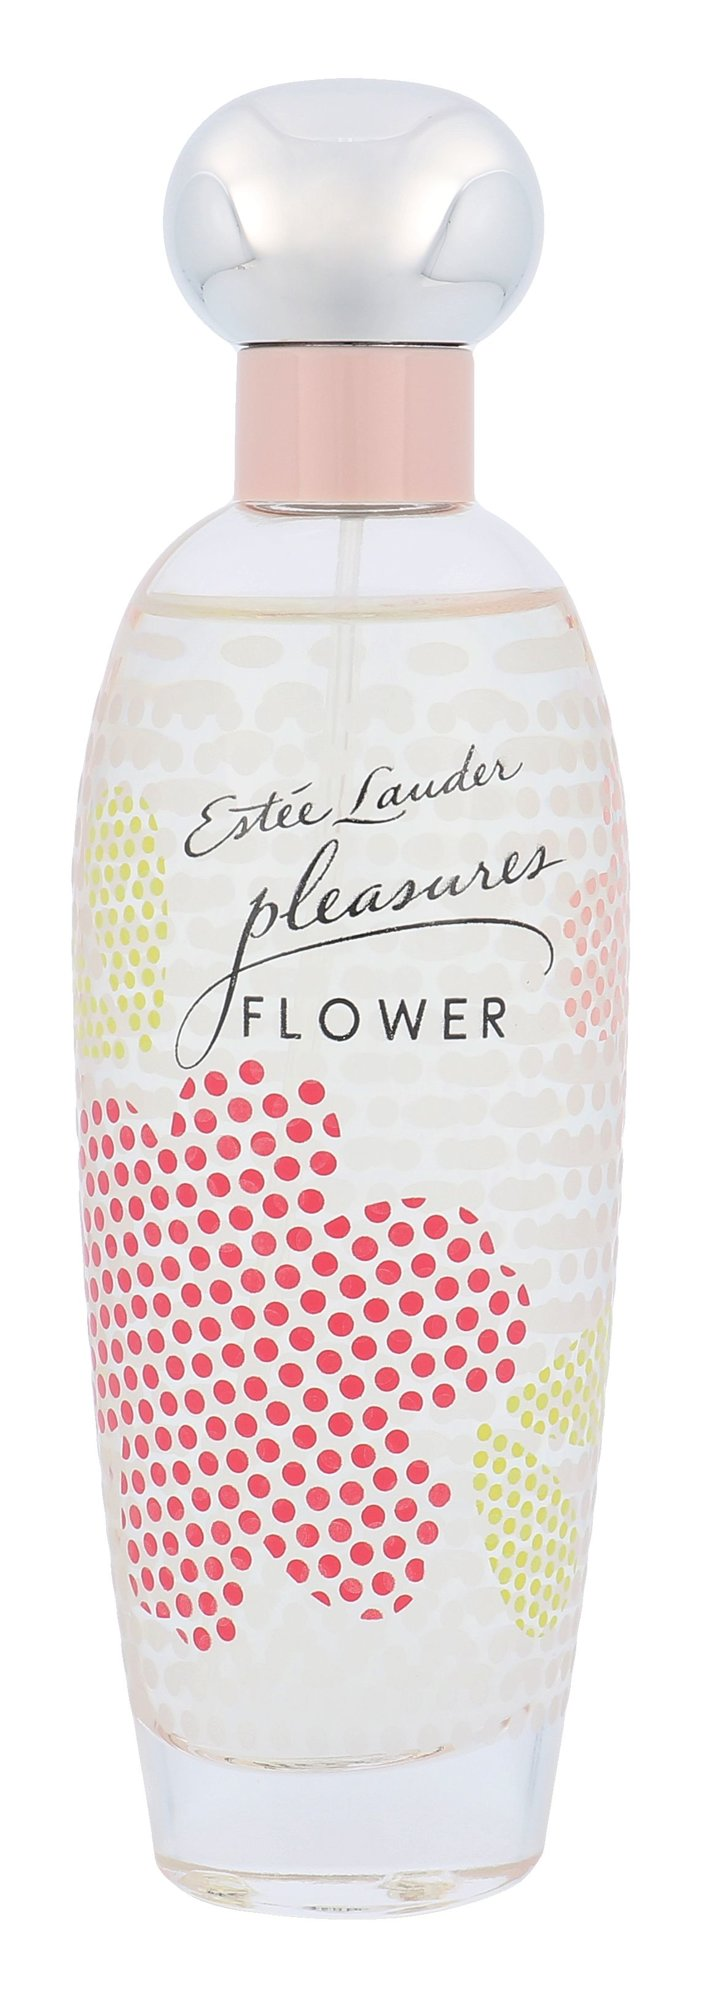 Estée Lauder Pleasures Flower EDP 100ml